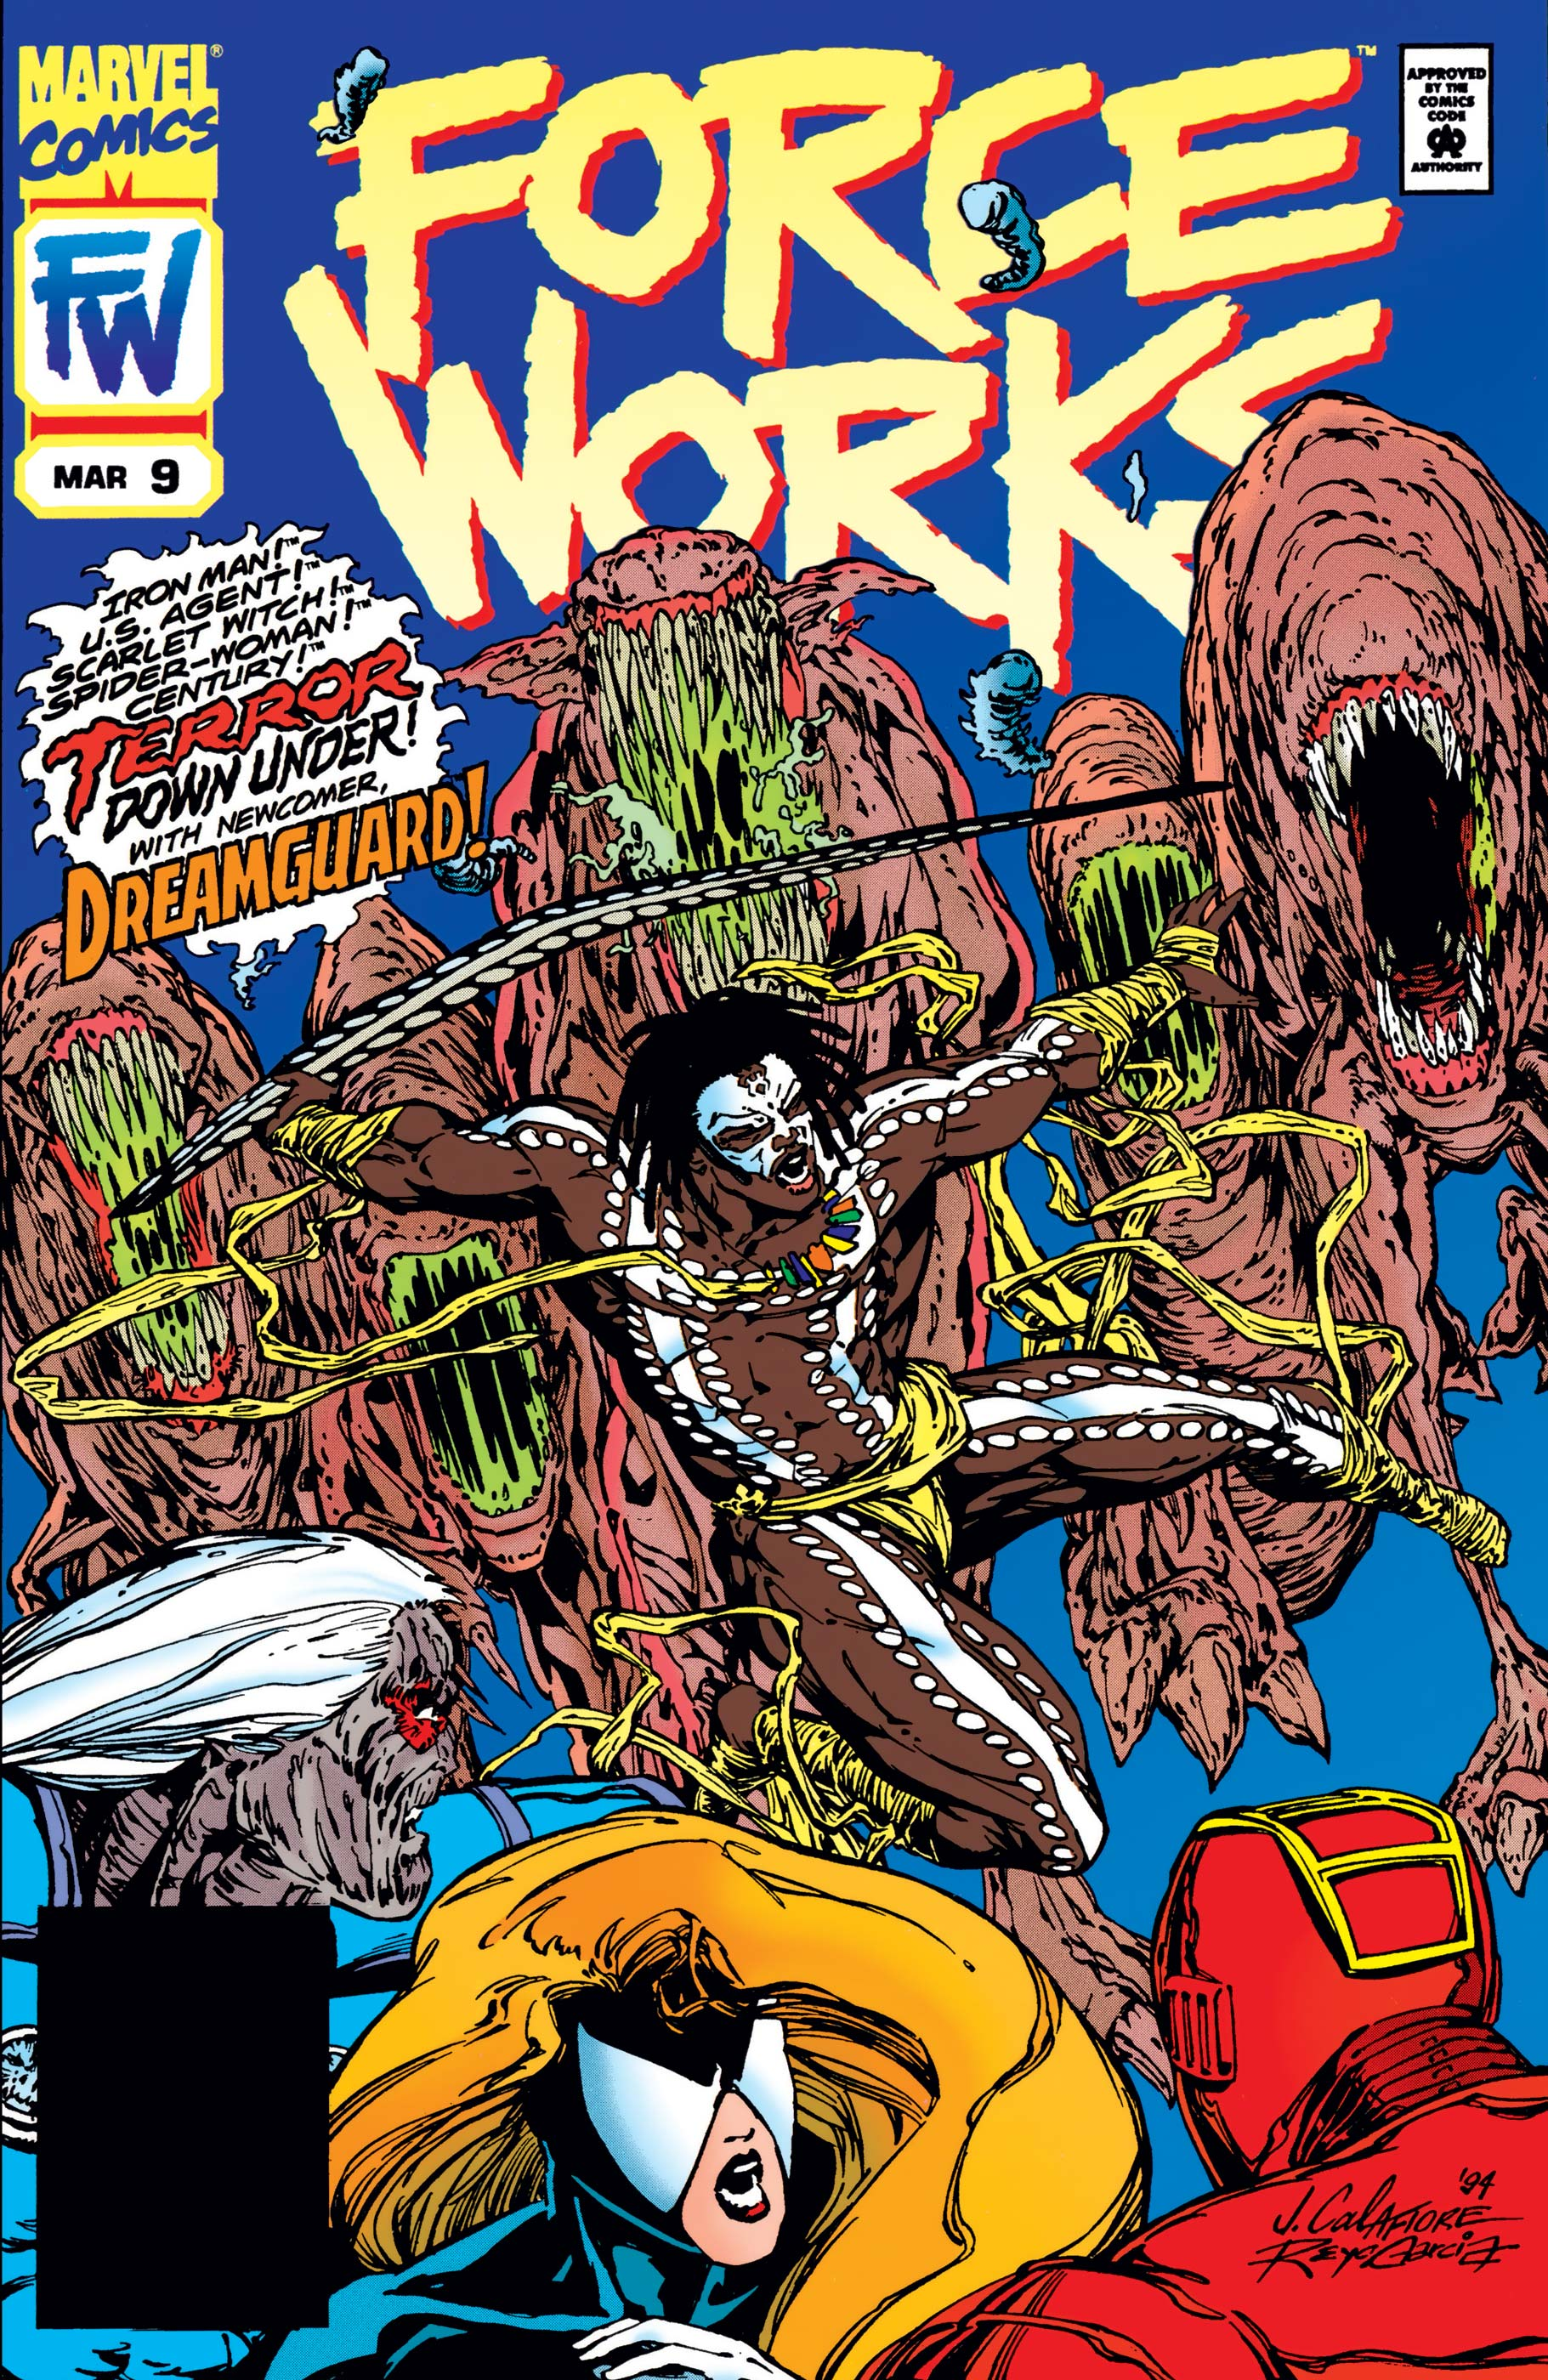 Force Works (1994) #9